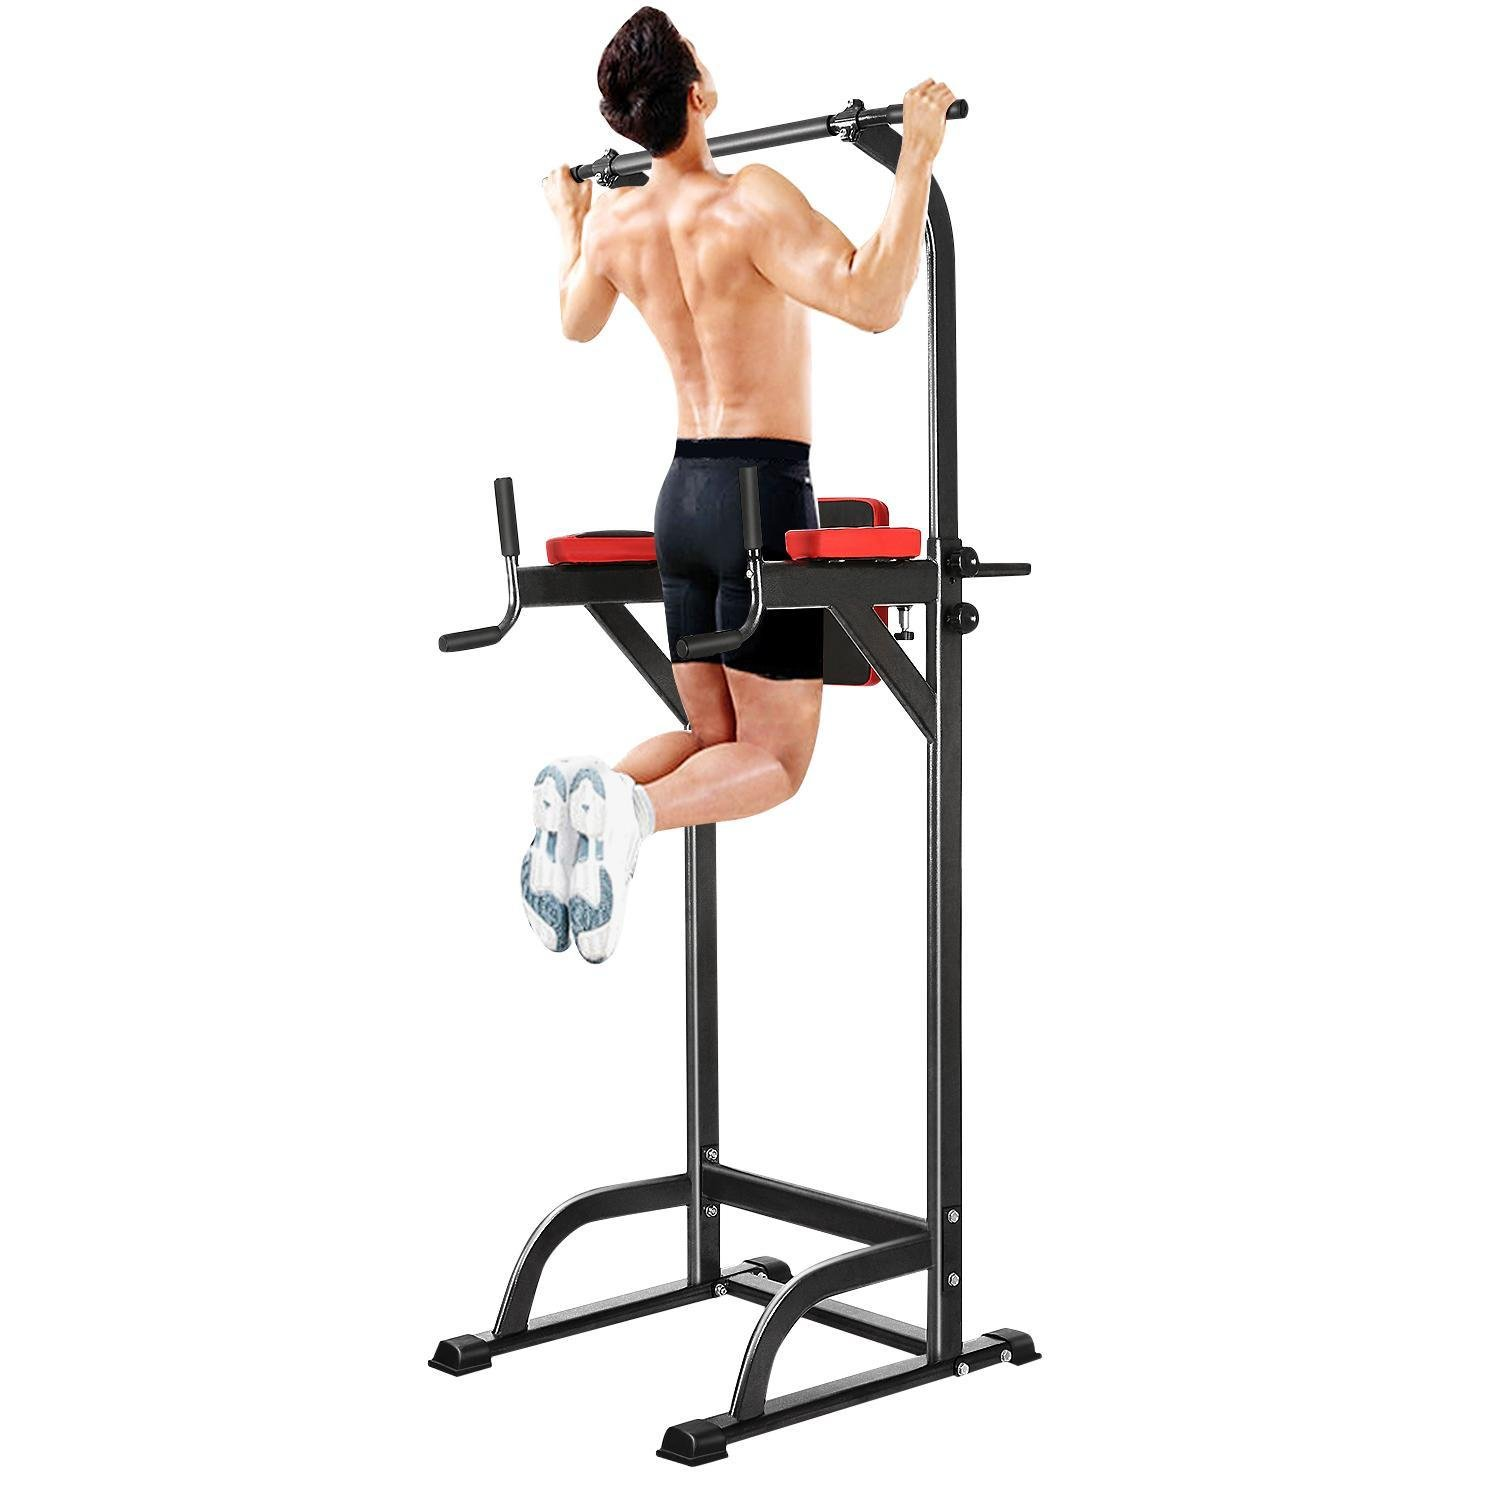 Etuoji Chin Up Bar Adjustable Abs Workout Knee Crunch Triceps Station Power Tower